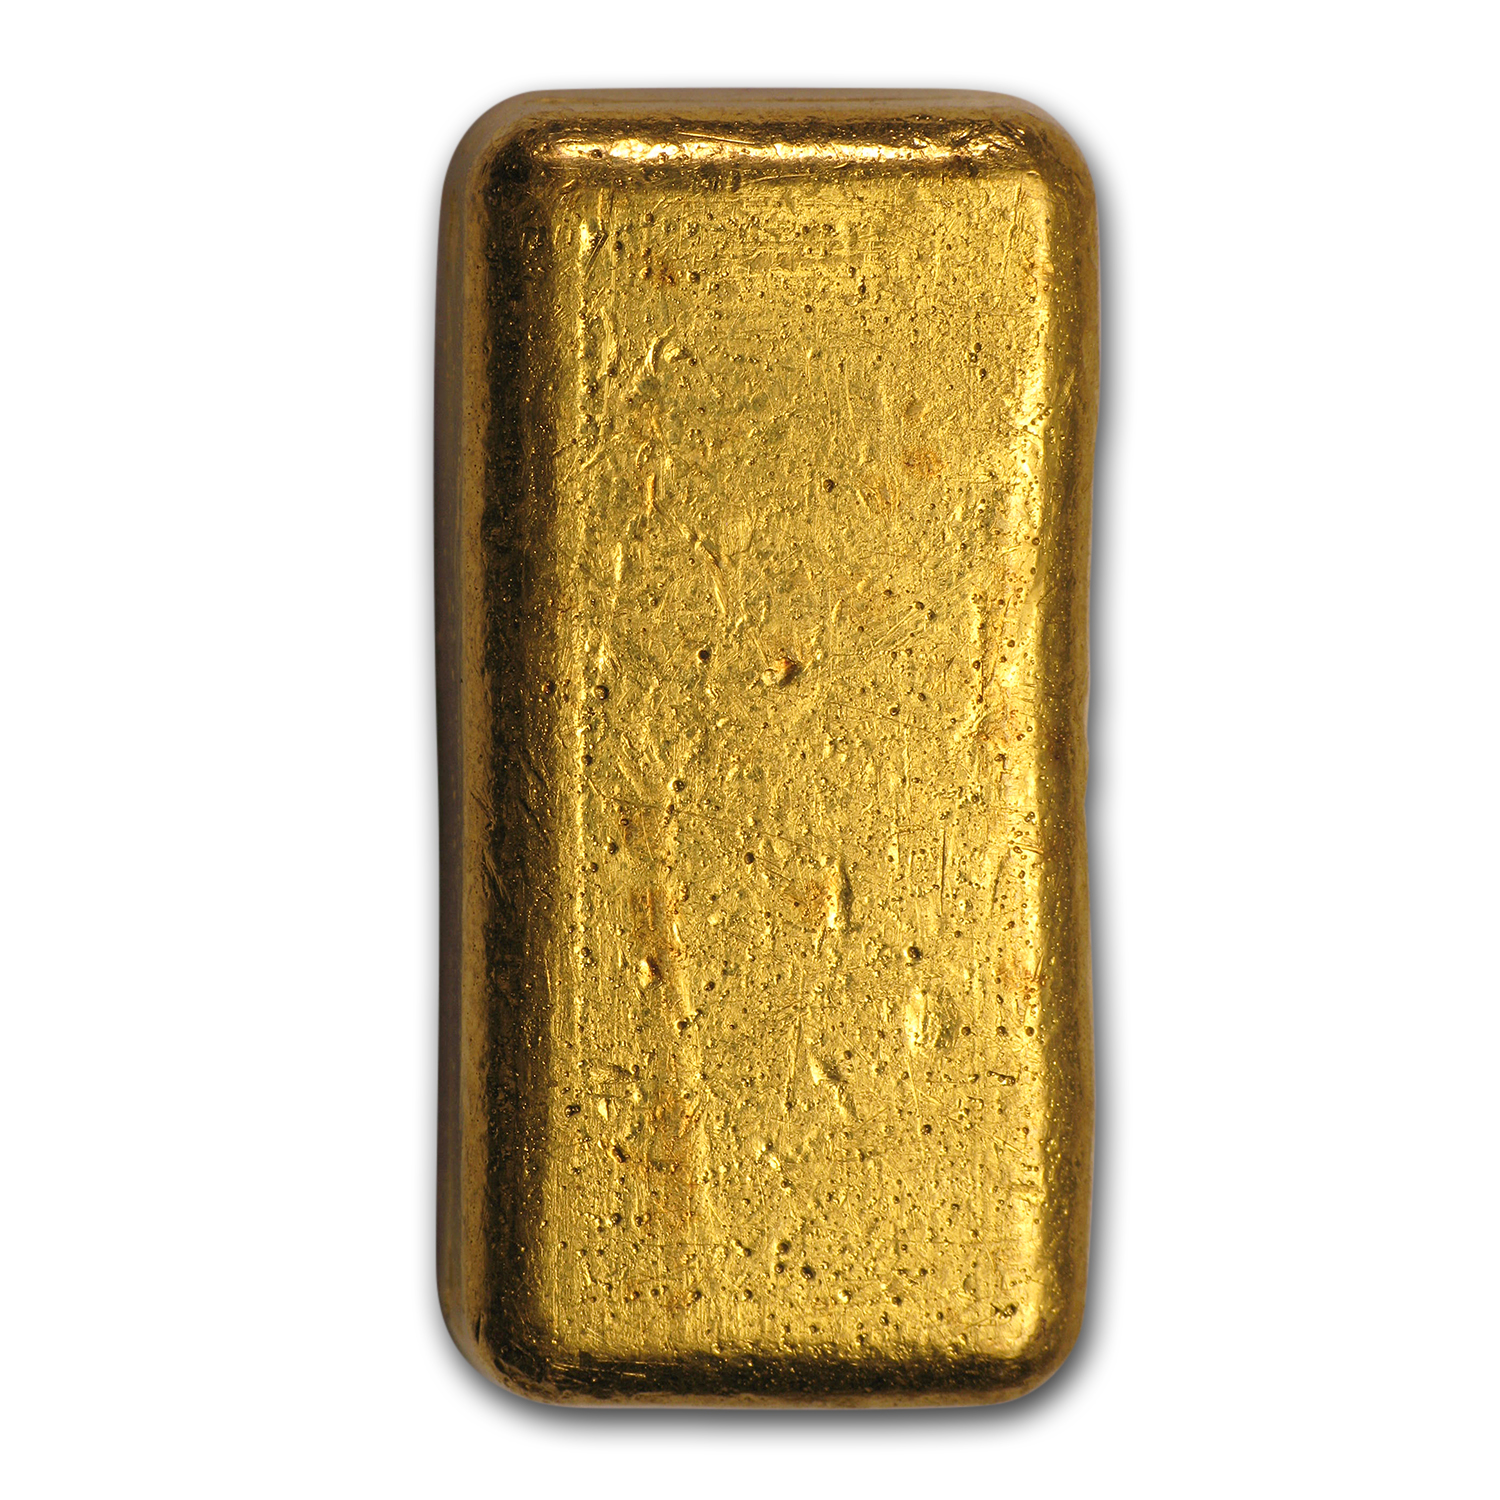 5 oz Gold Bar - Perth Mint (Poured, Old Style Swan)